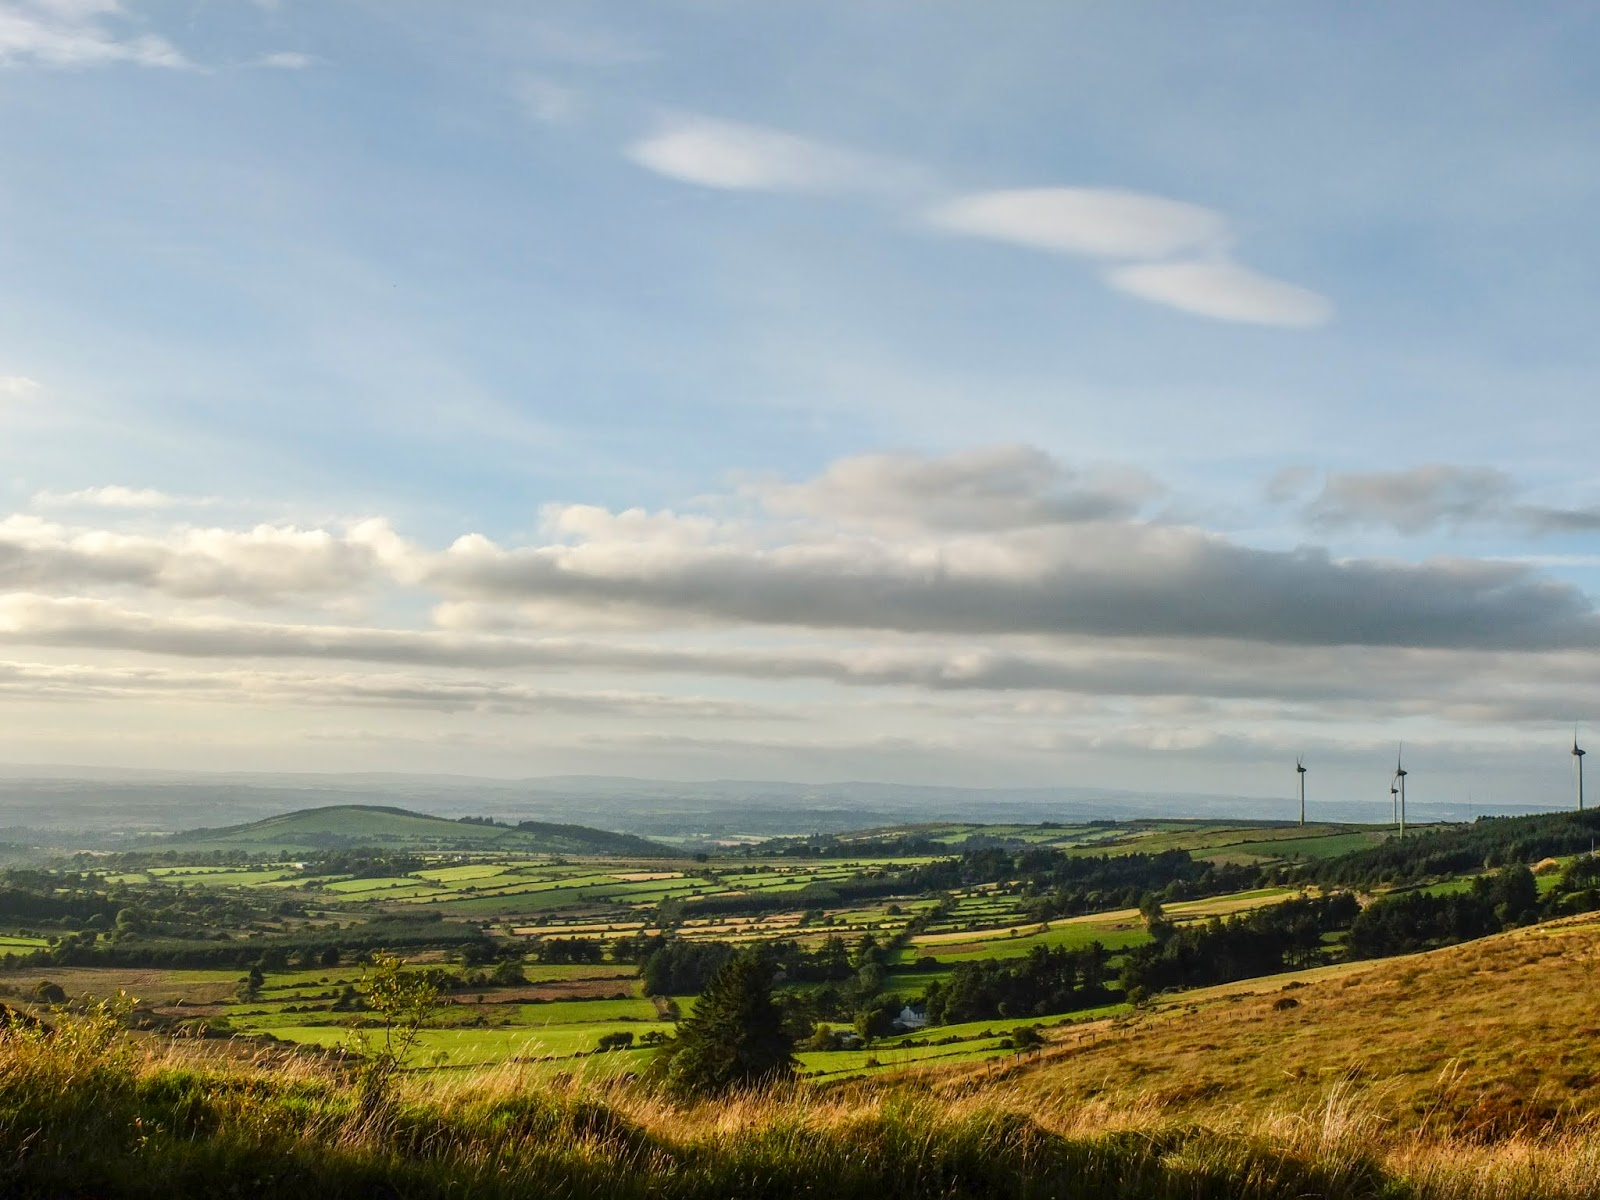 Landscape of a mountain valley in North Cork before sunset.